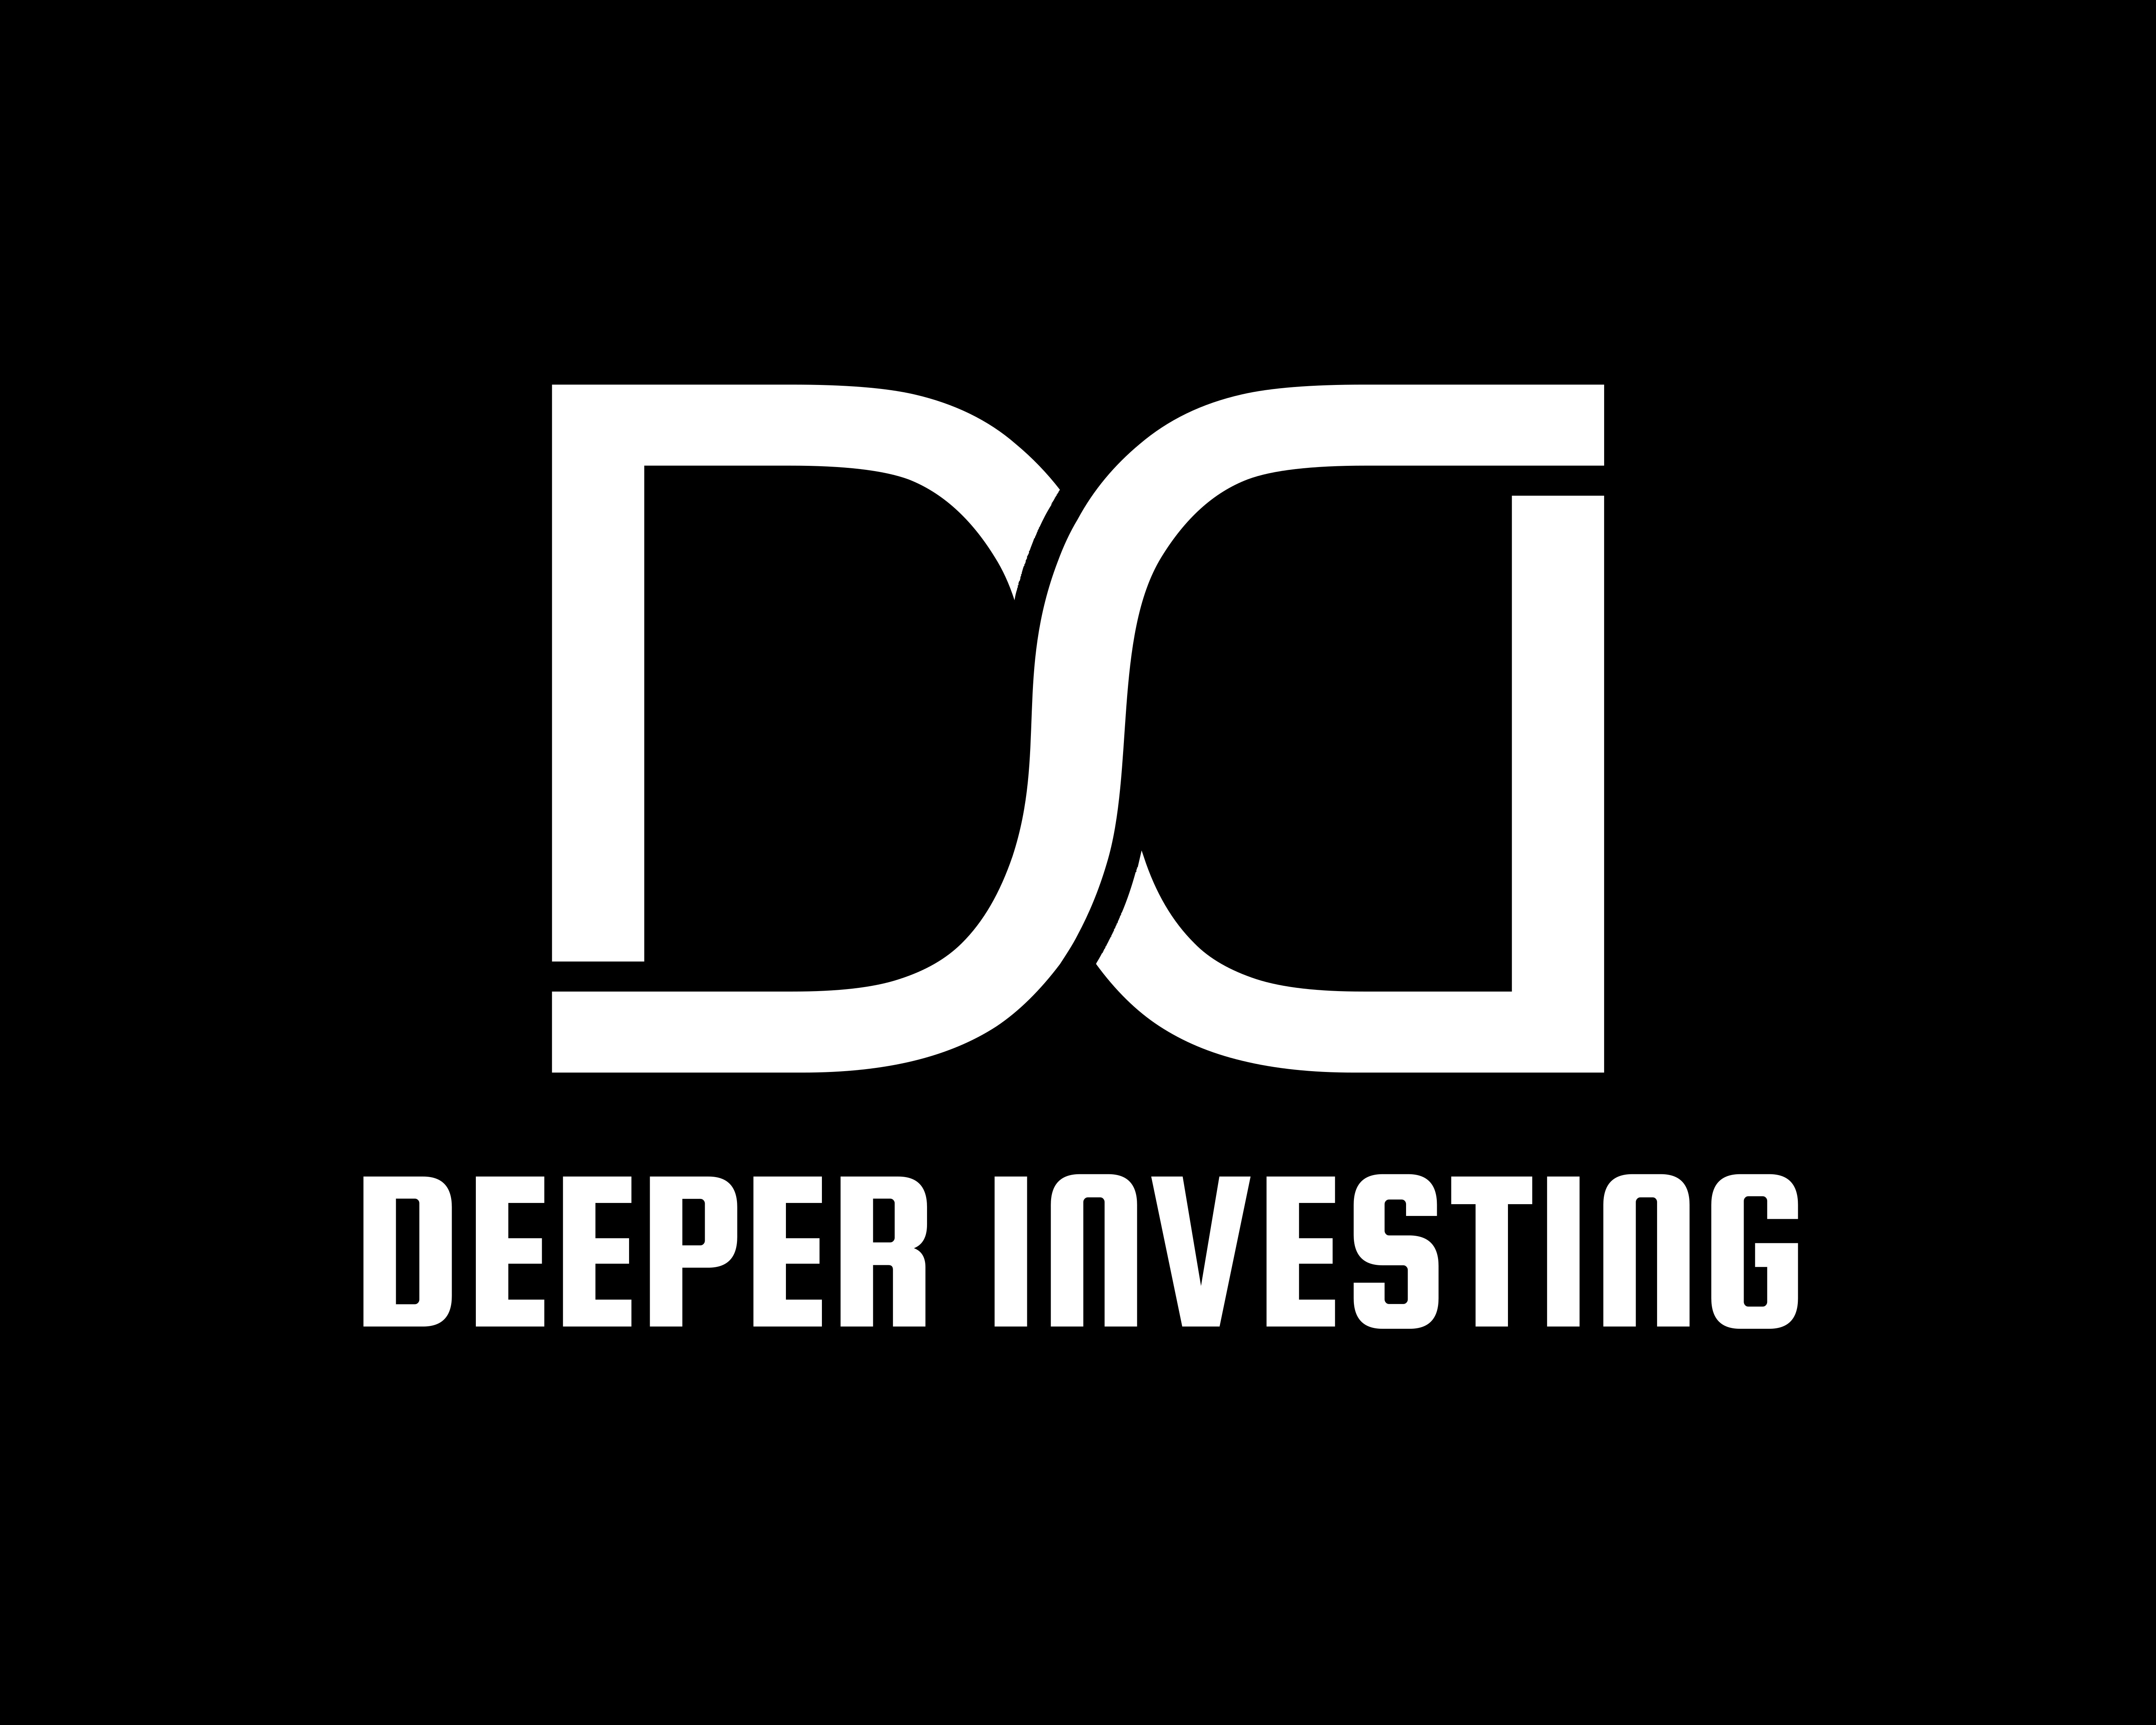 DEEPER Investing Team